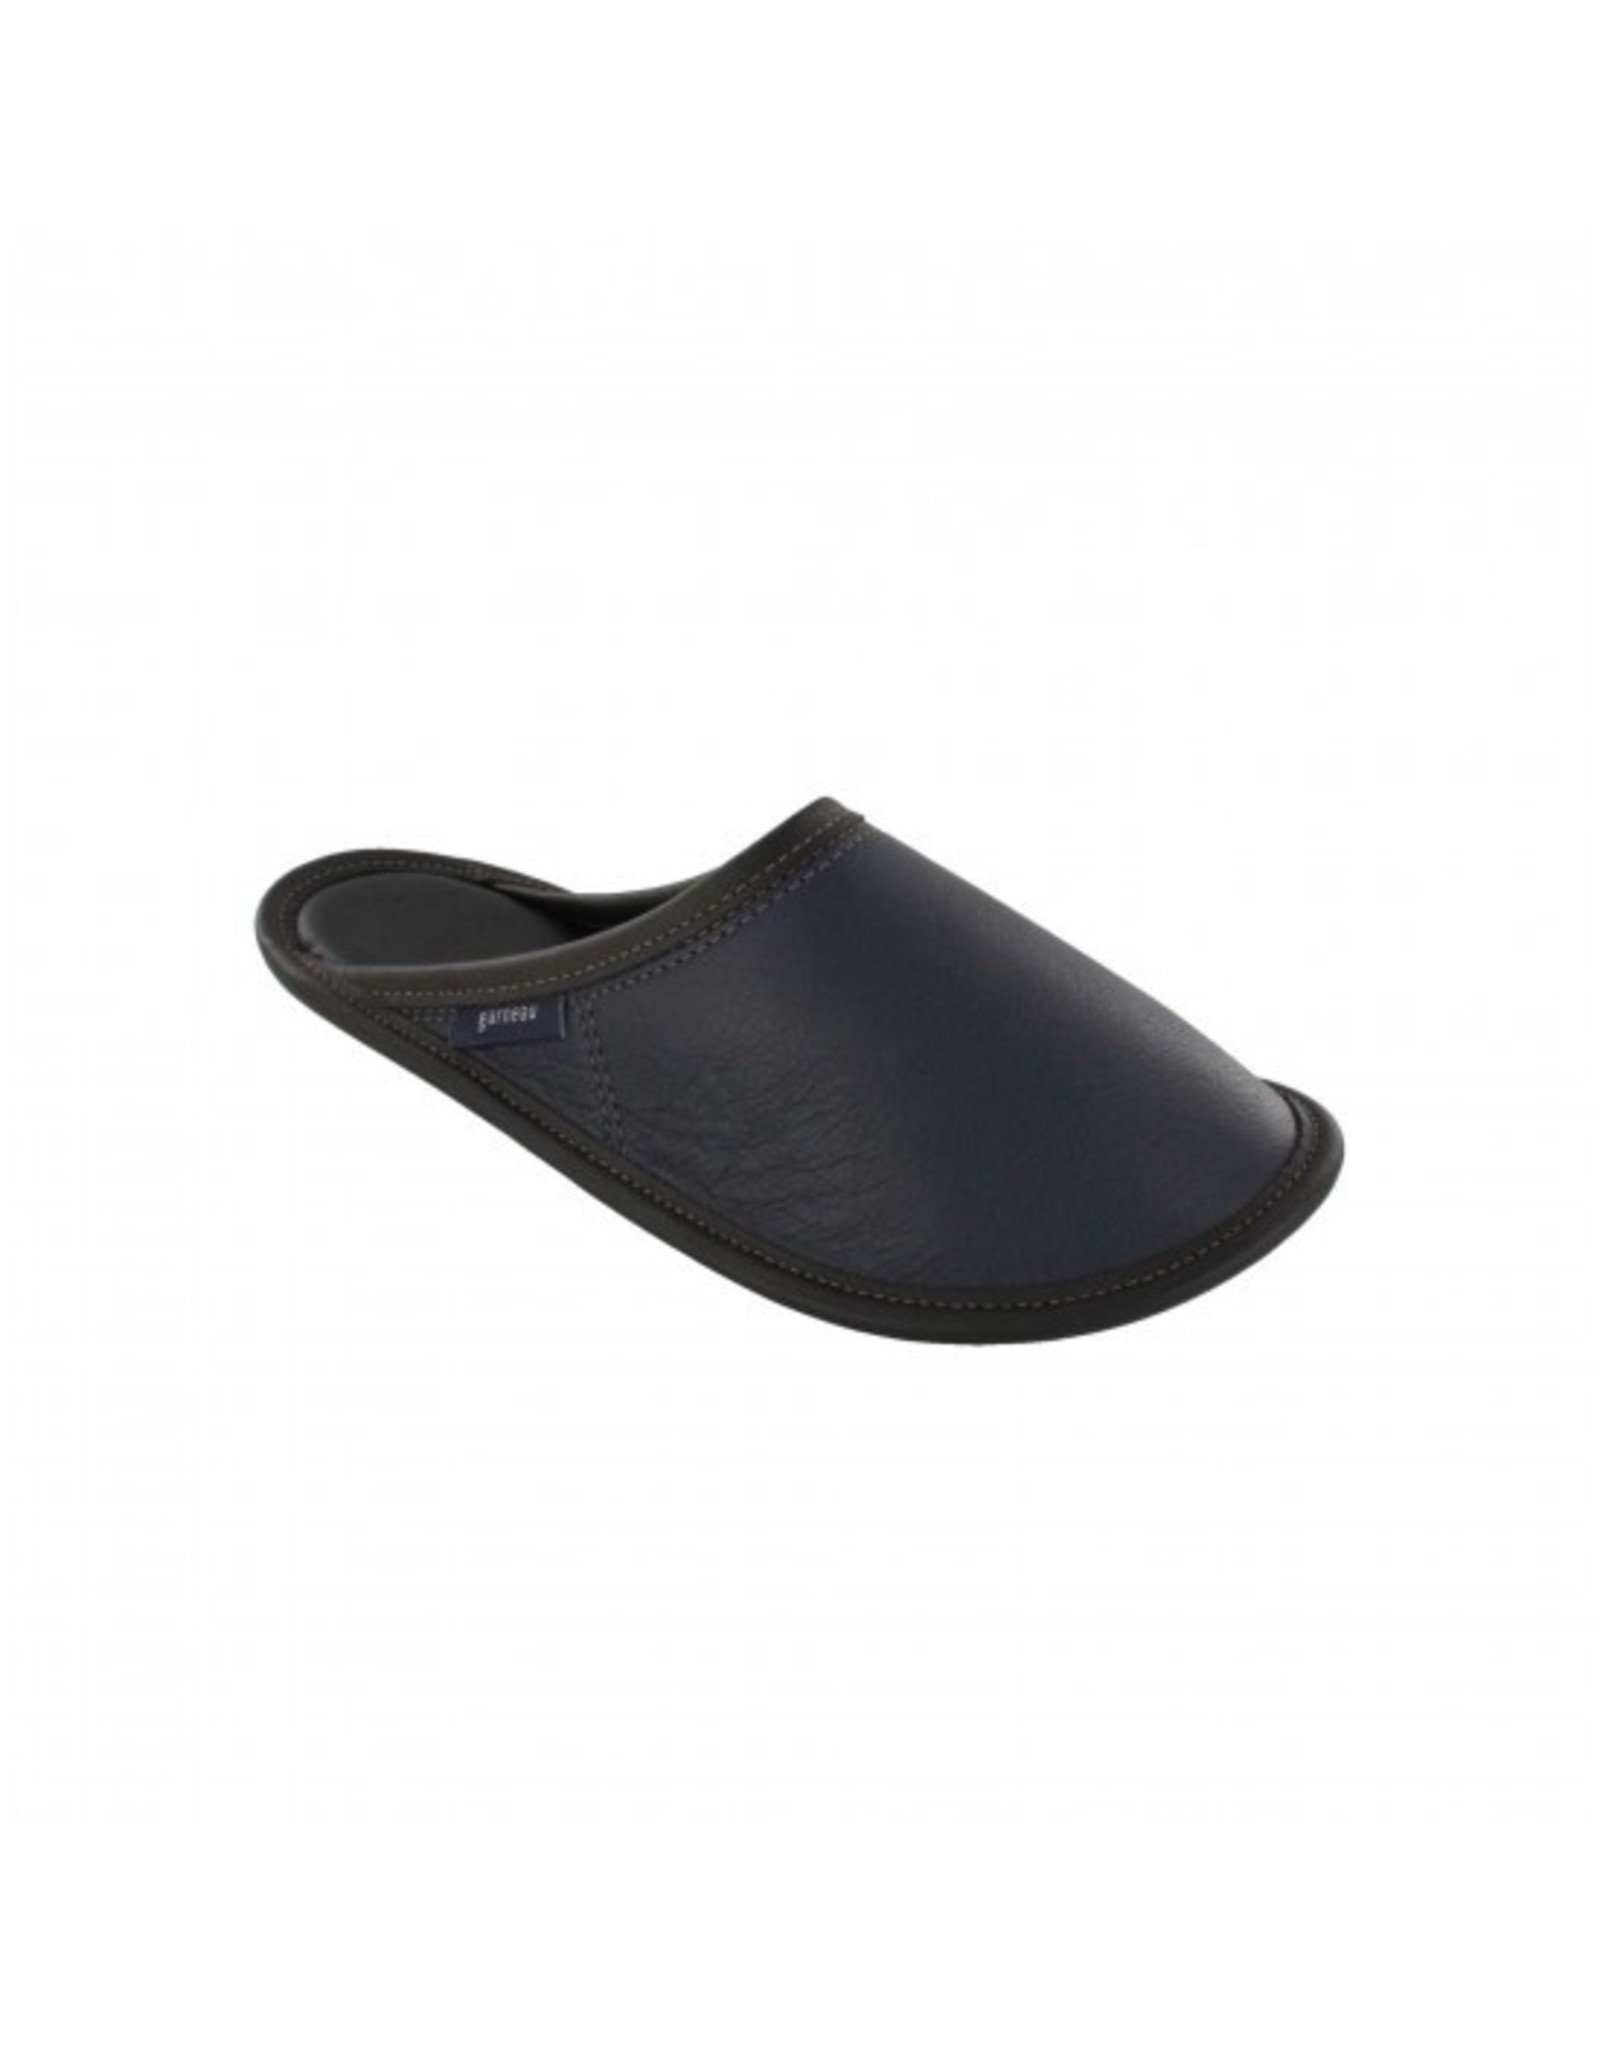 All-leather mule slippers - Made in Quebec